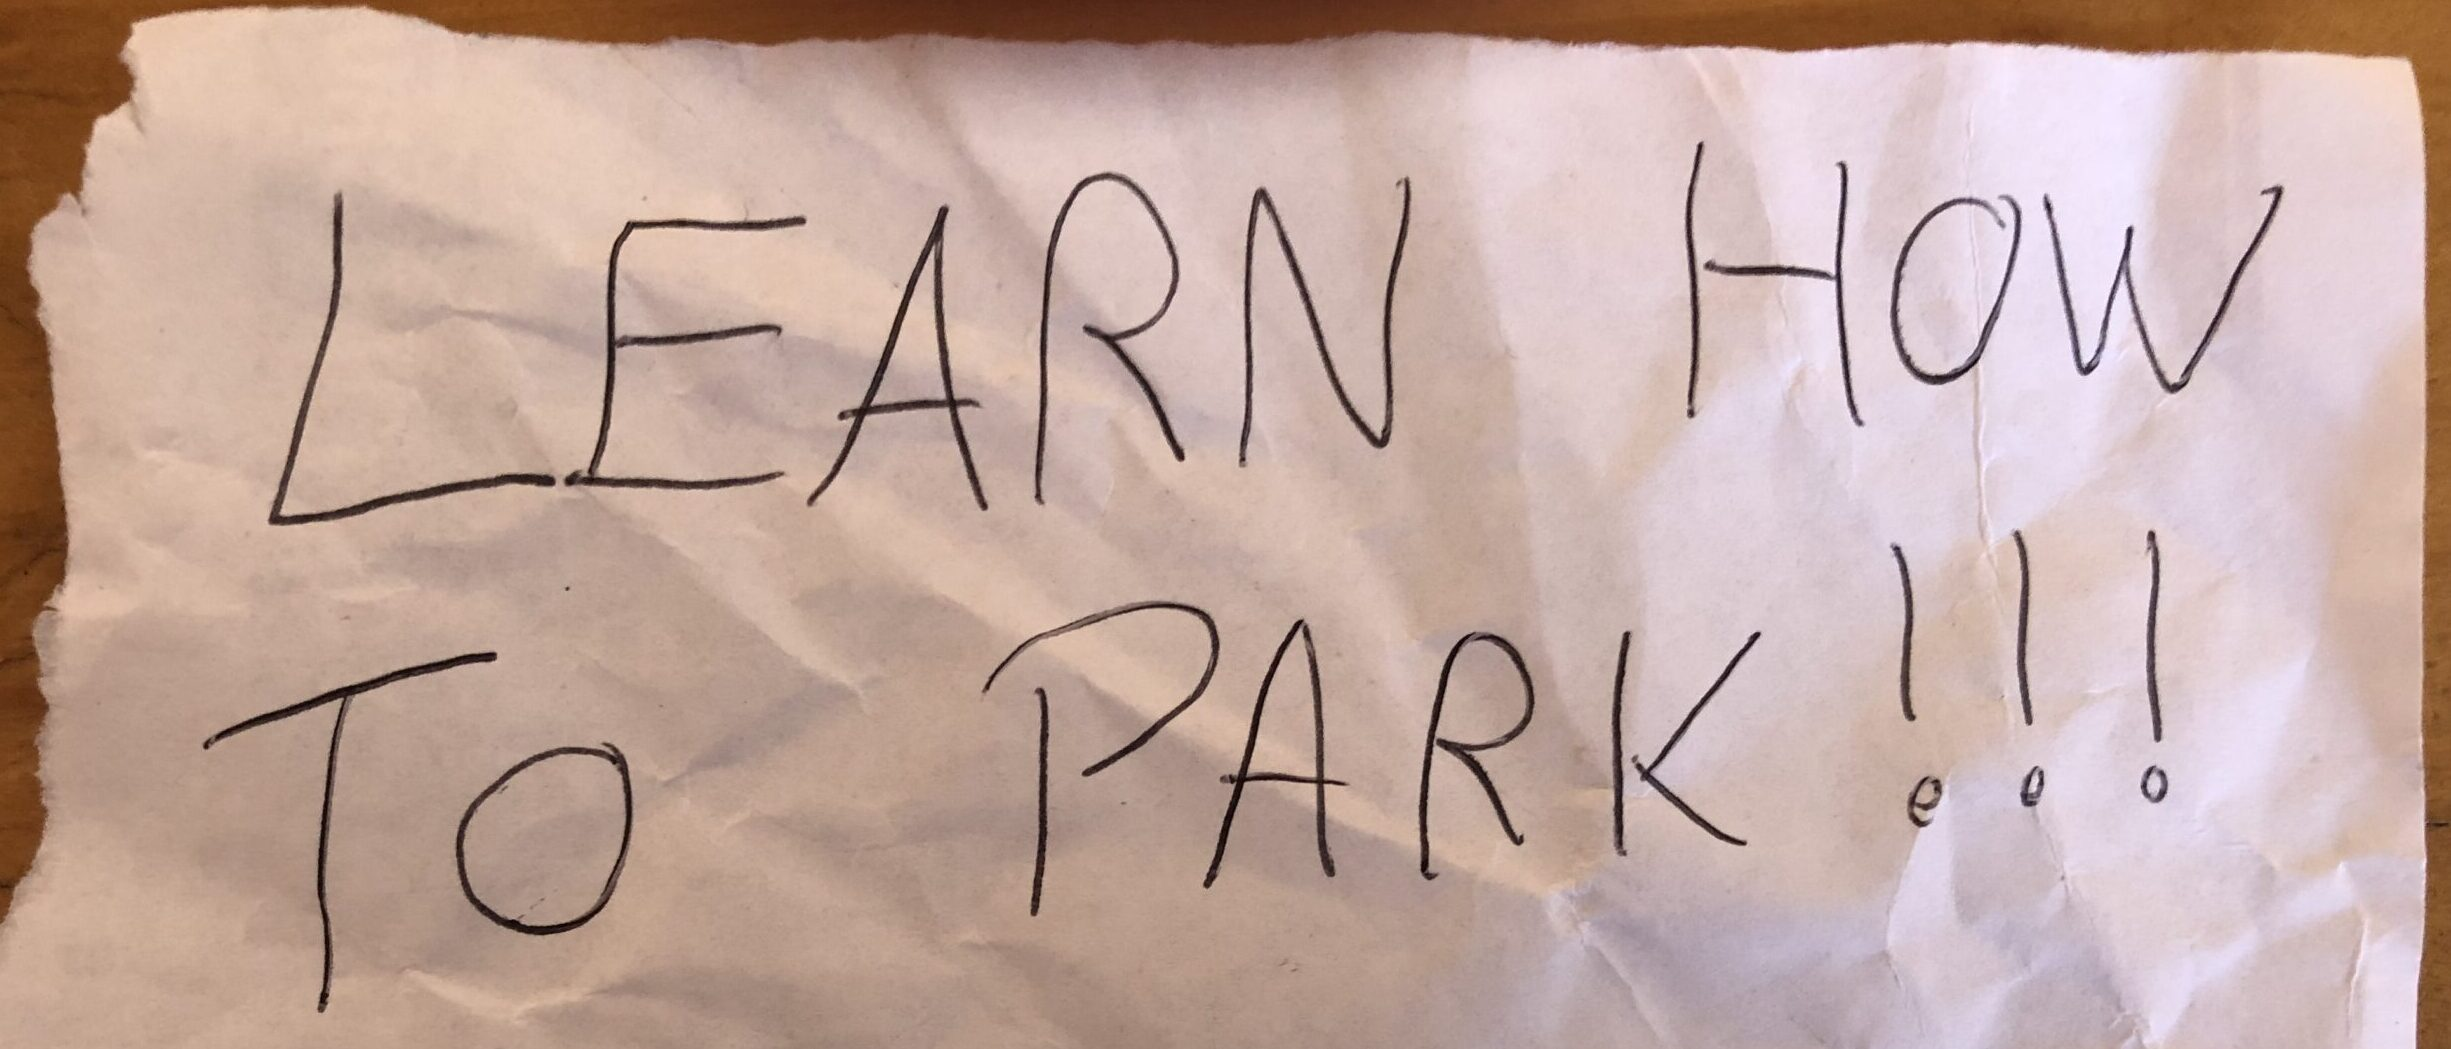 LEARN HOW TO PARK!!! response